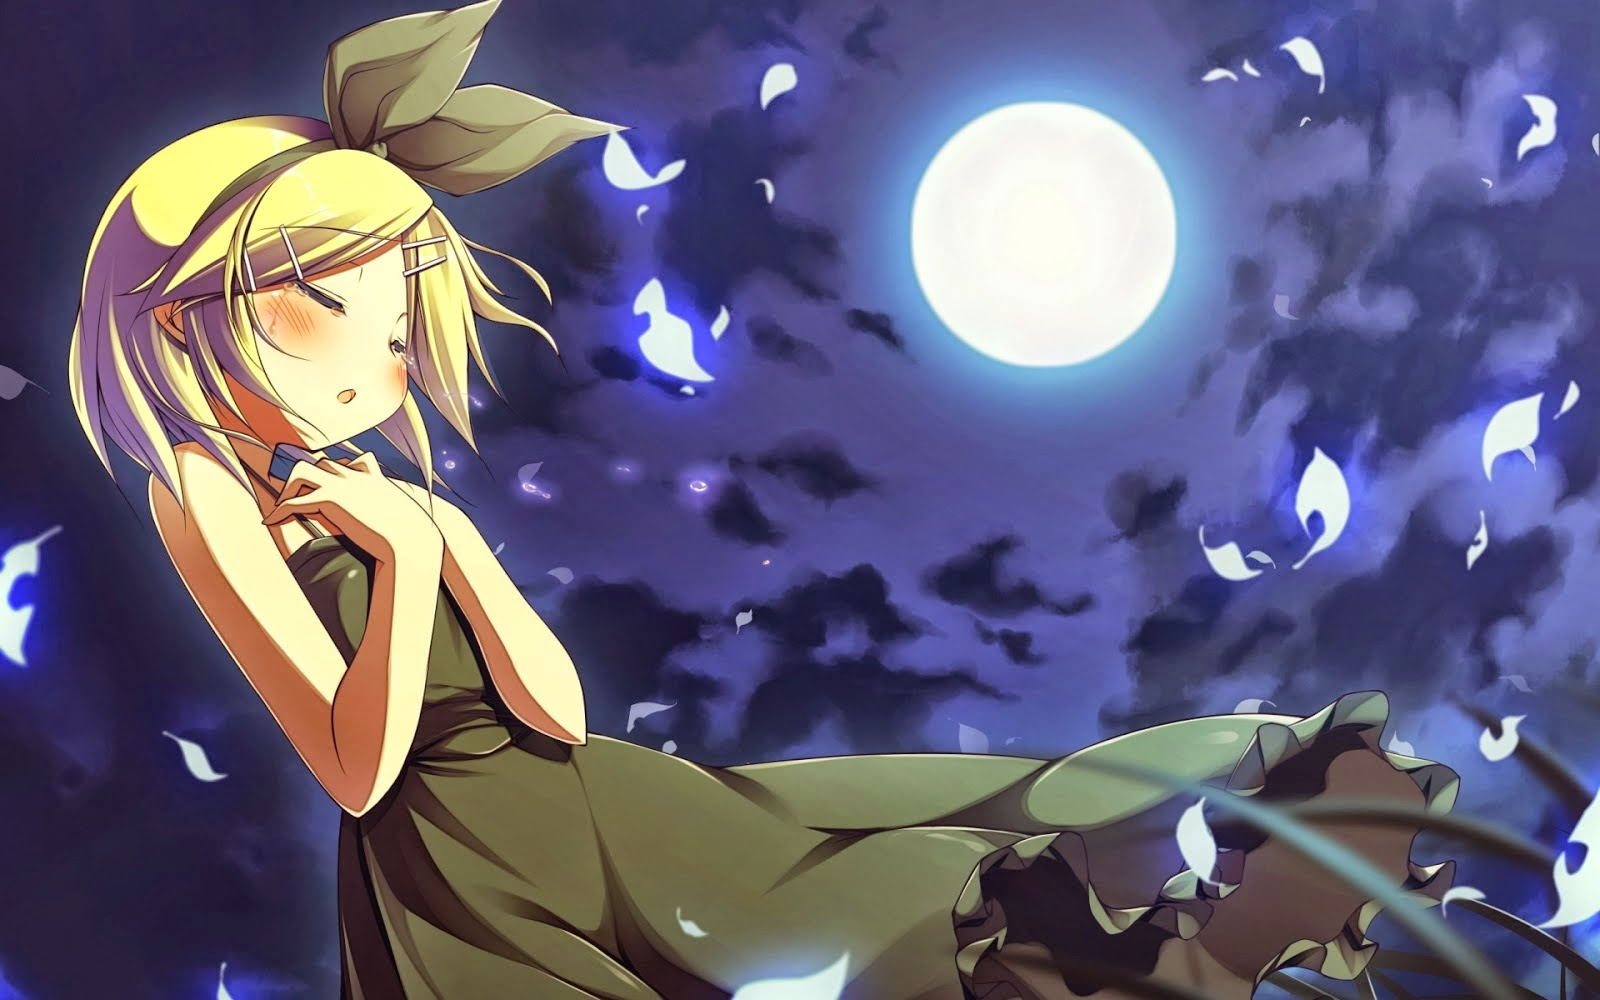 Sad Anime Girl Facebook Cover I am so Lonely I'm So Lonely...